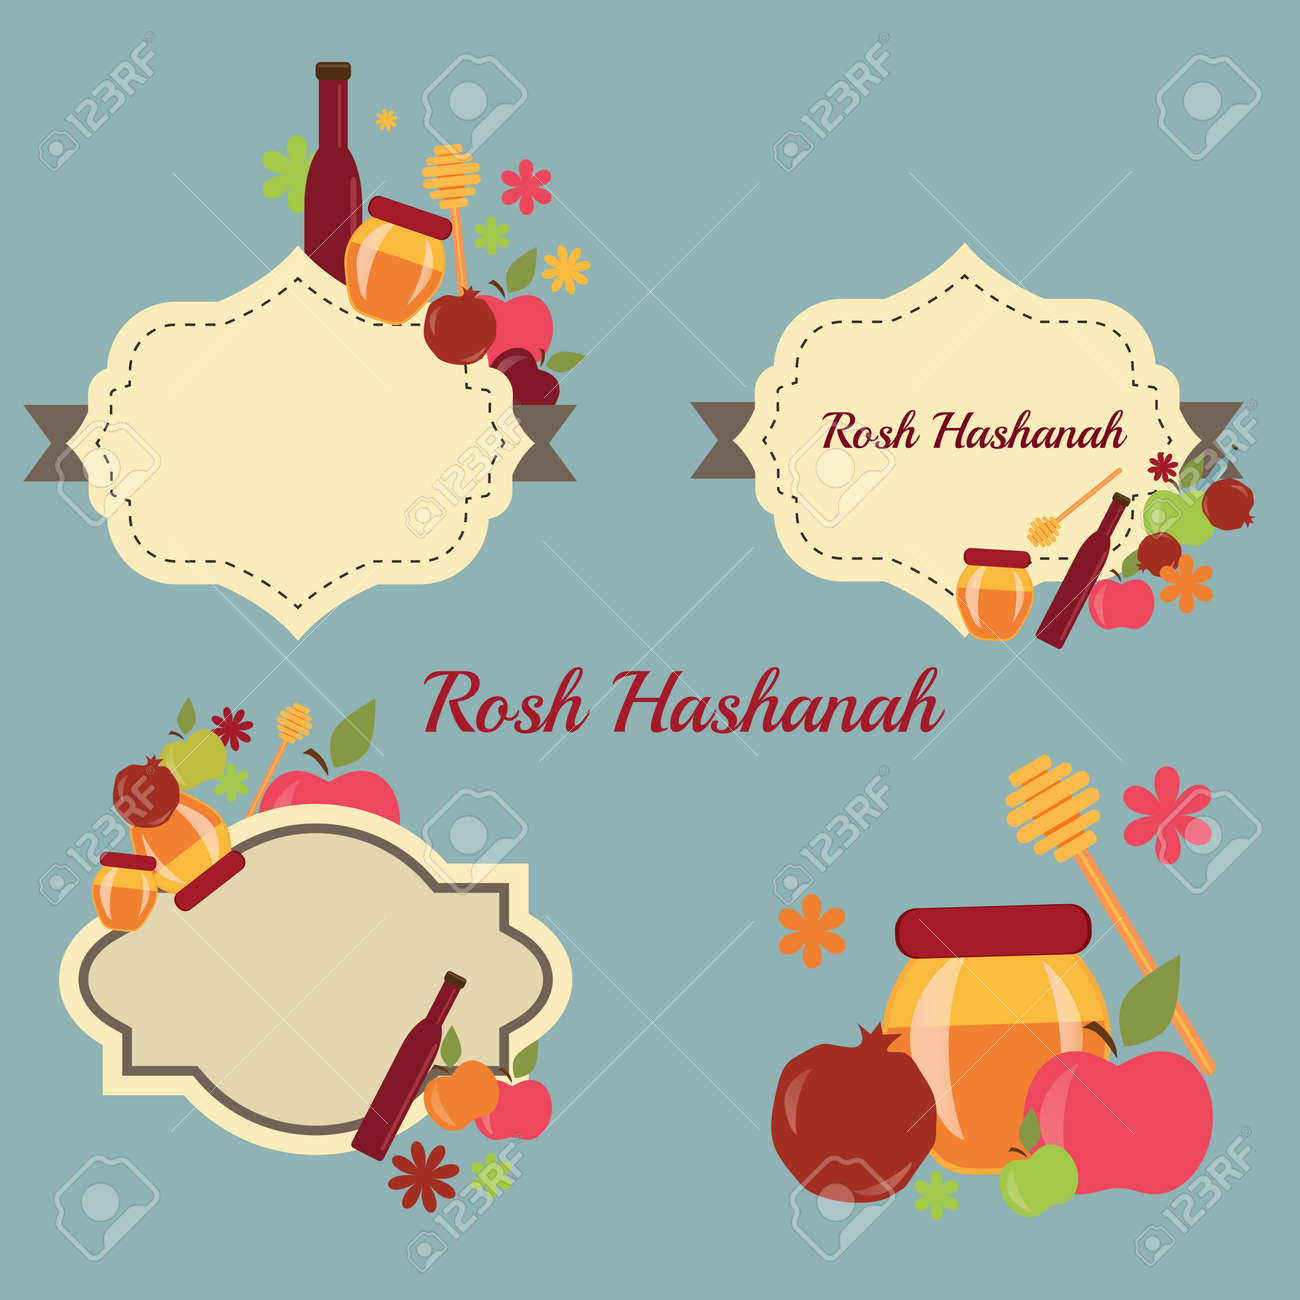 Collection of labels and elements for rosh hashanah rosh hashanah collection of labels and elements for rosh hashanah rosh hashanah vector greeting card design for kristyandbryce Choice Image